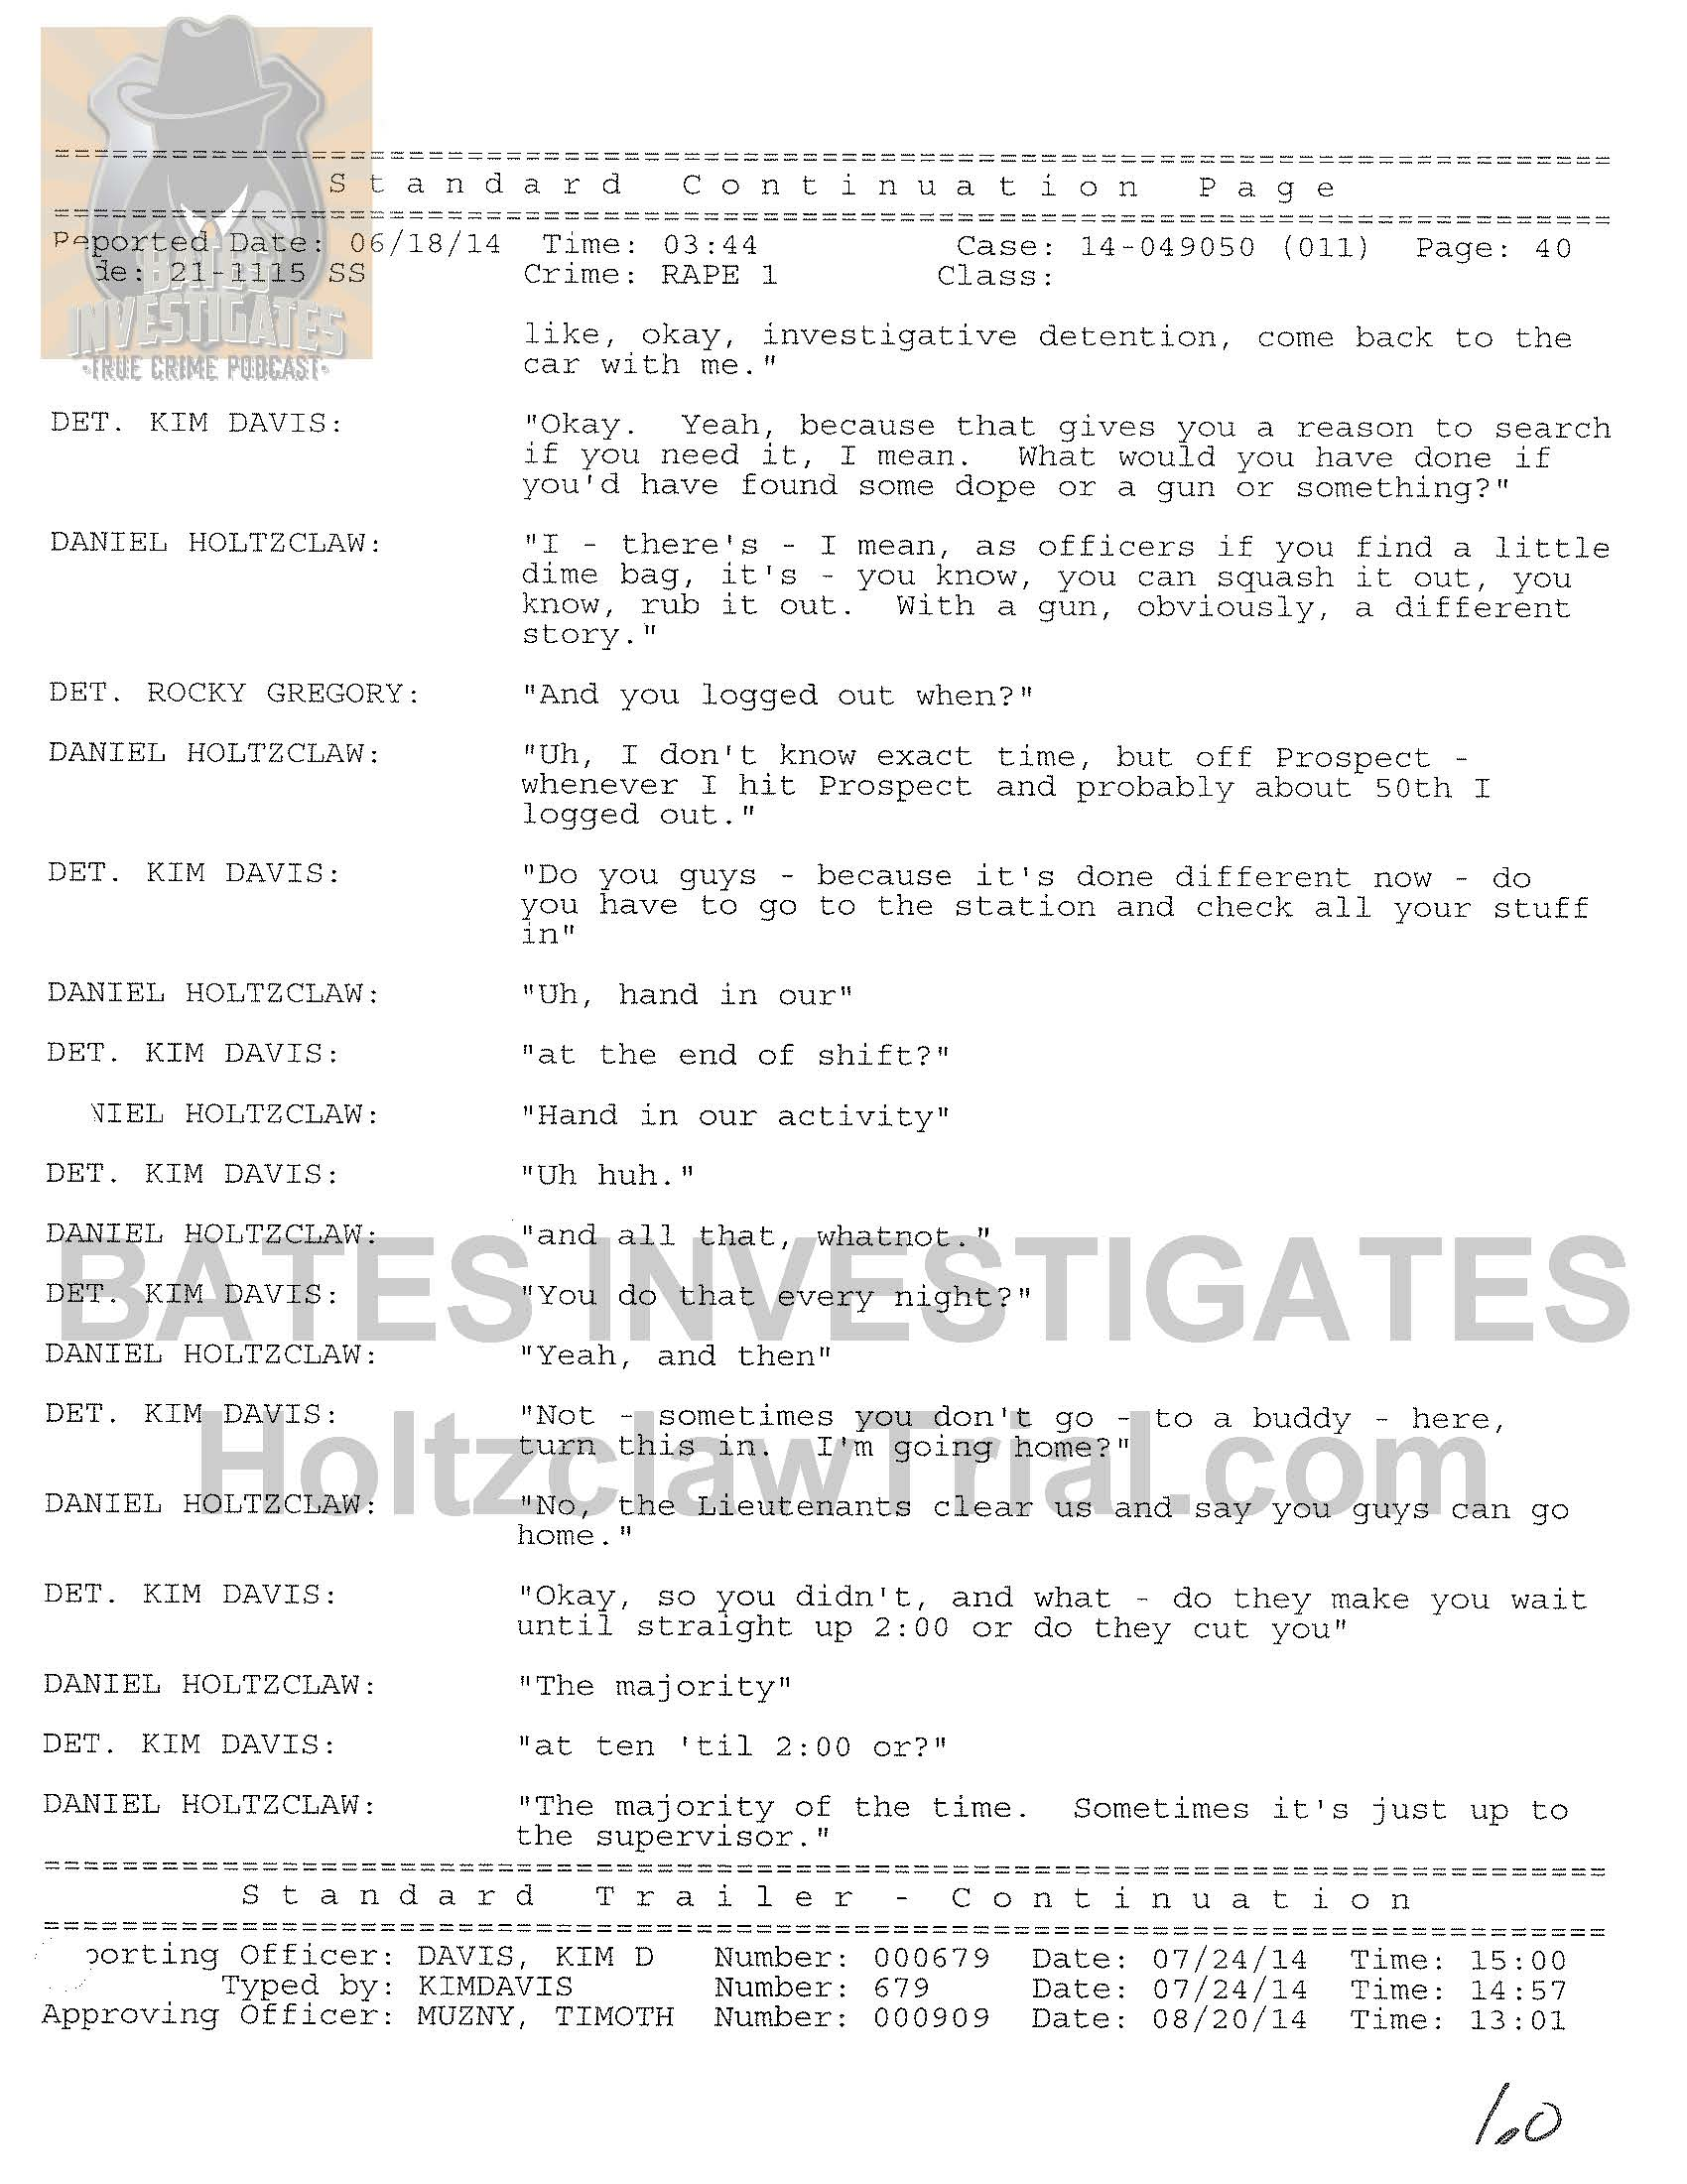 Holtzclaw Interrogation Transcript - Ep02 Redacted_Page_40.jpg